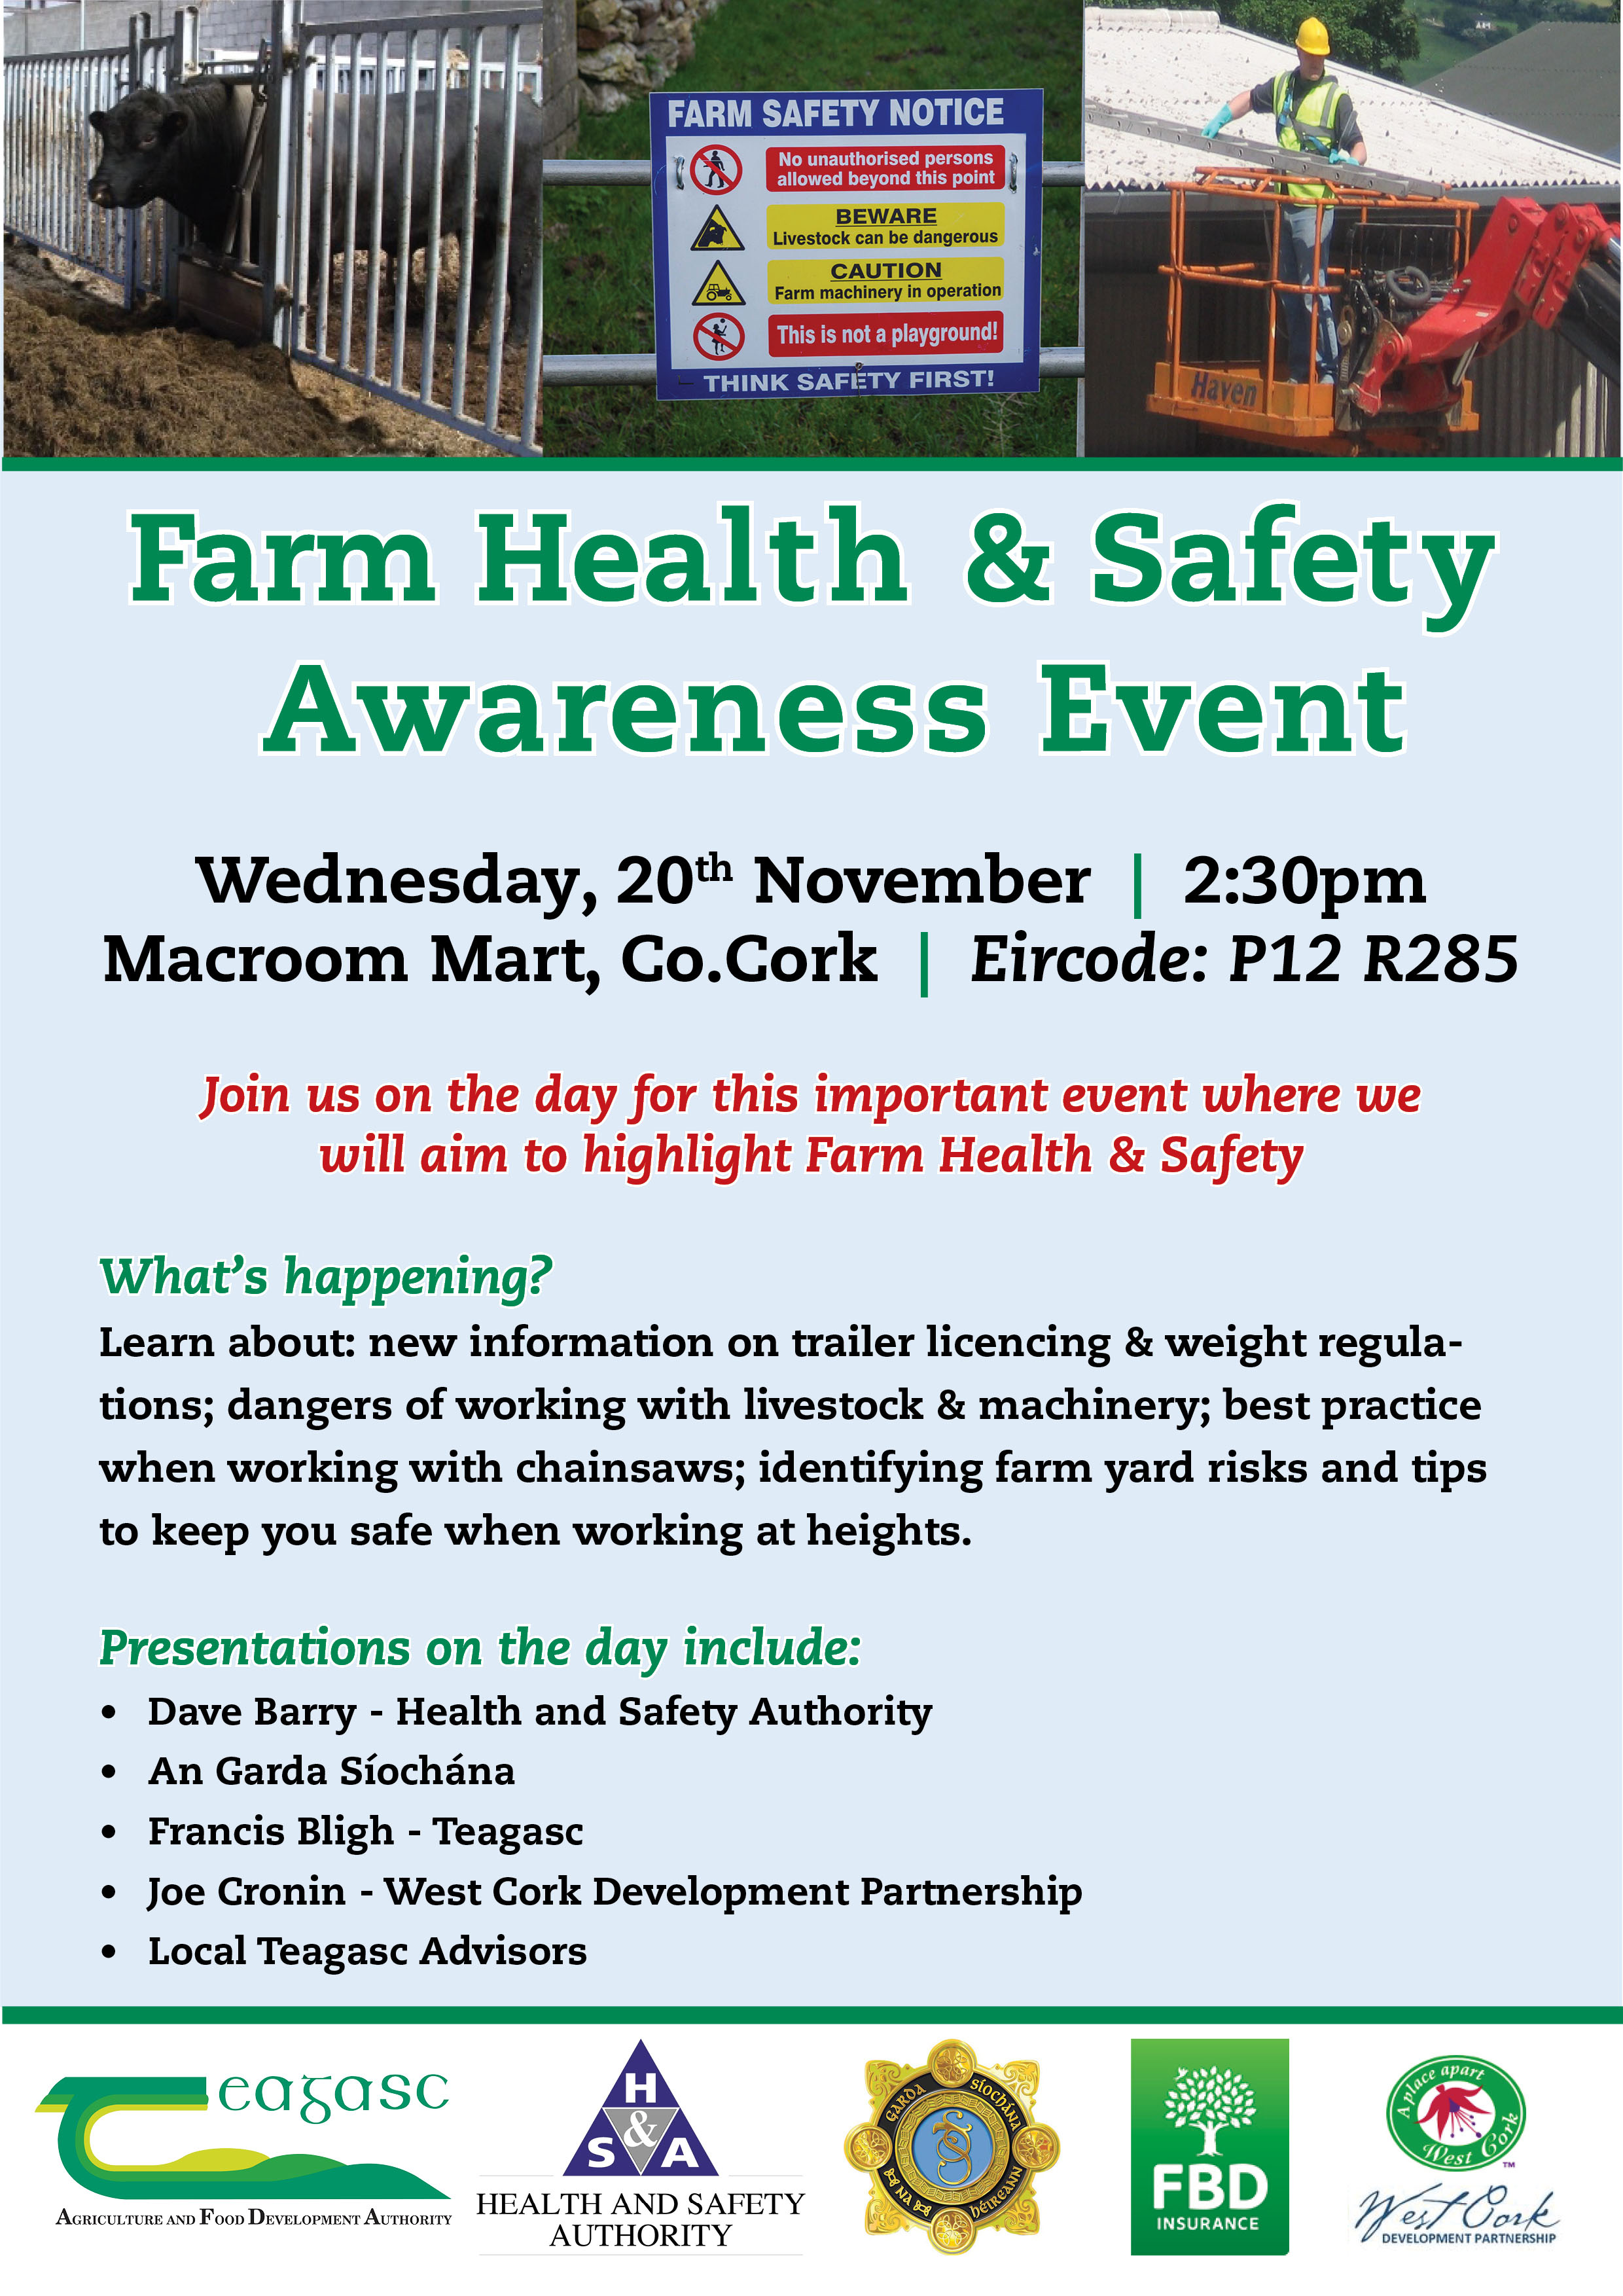 Family Farm Health and Safety Awareness Day